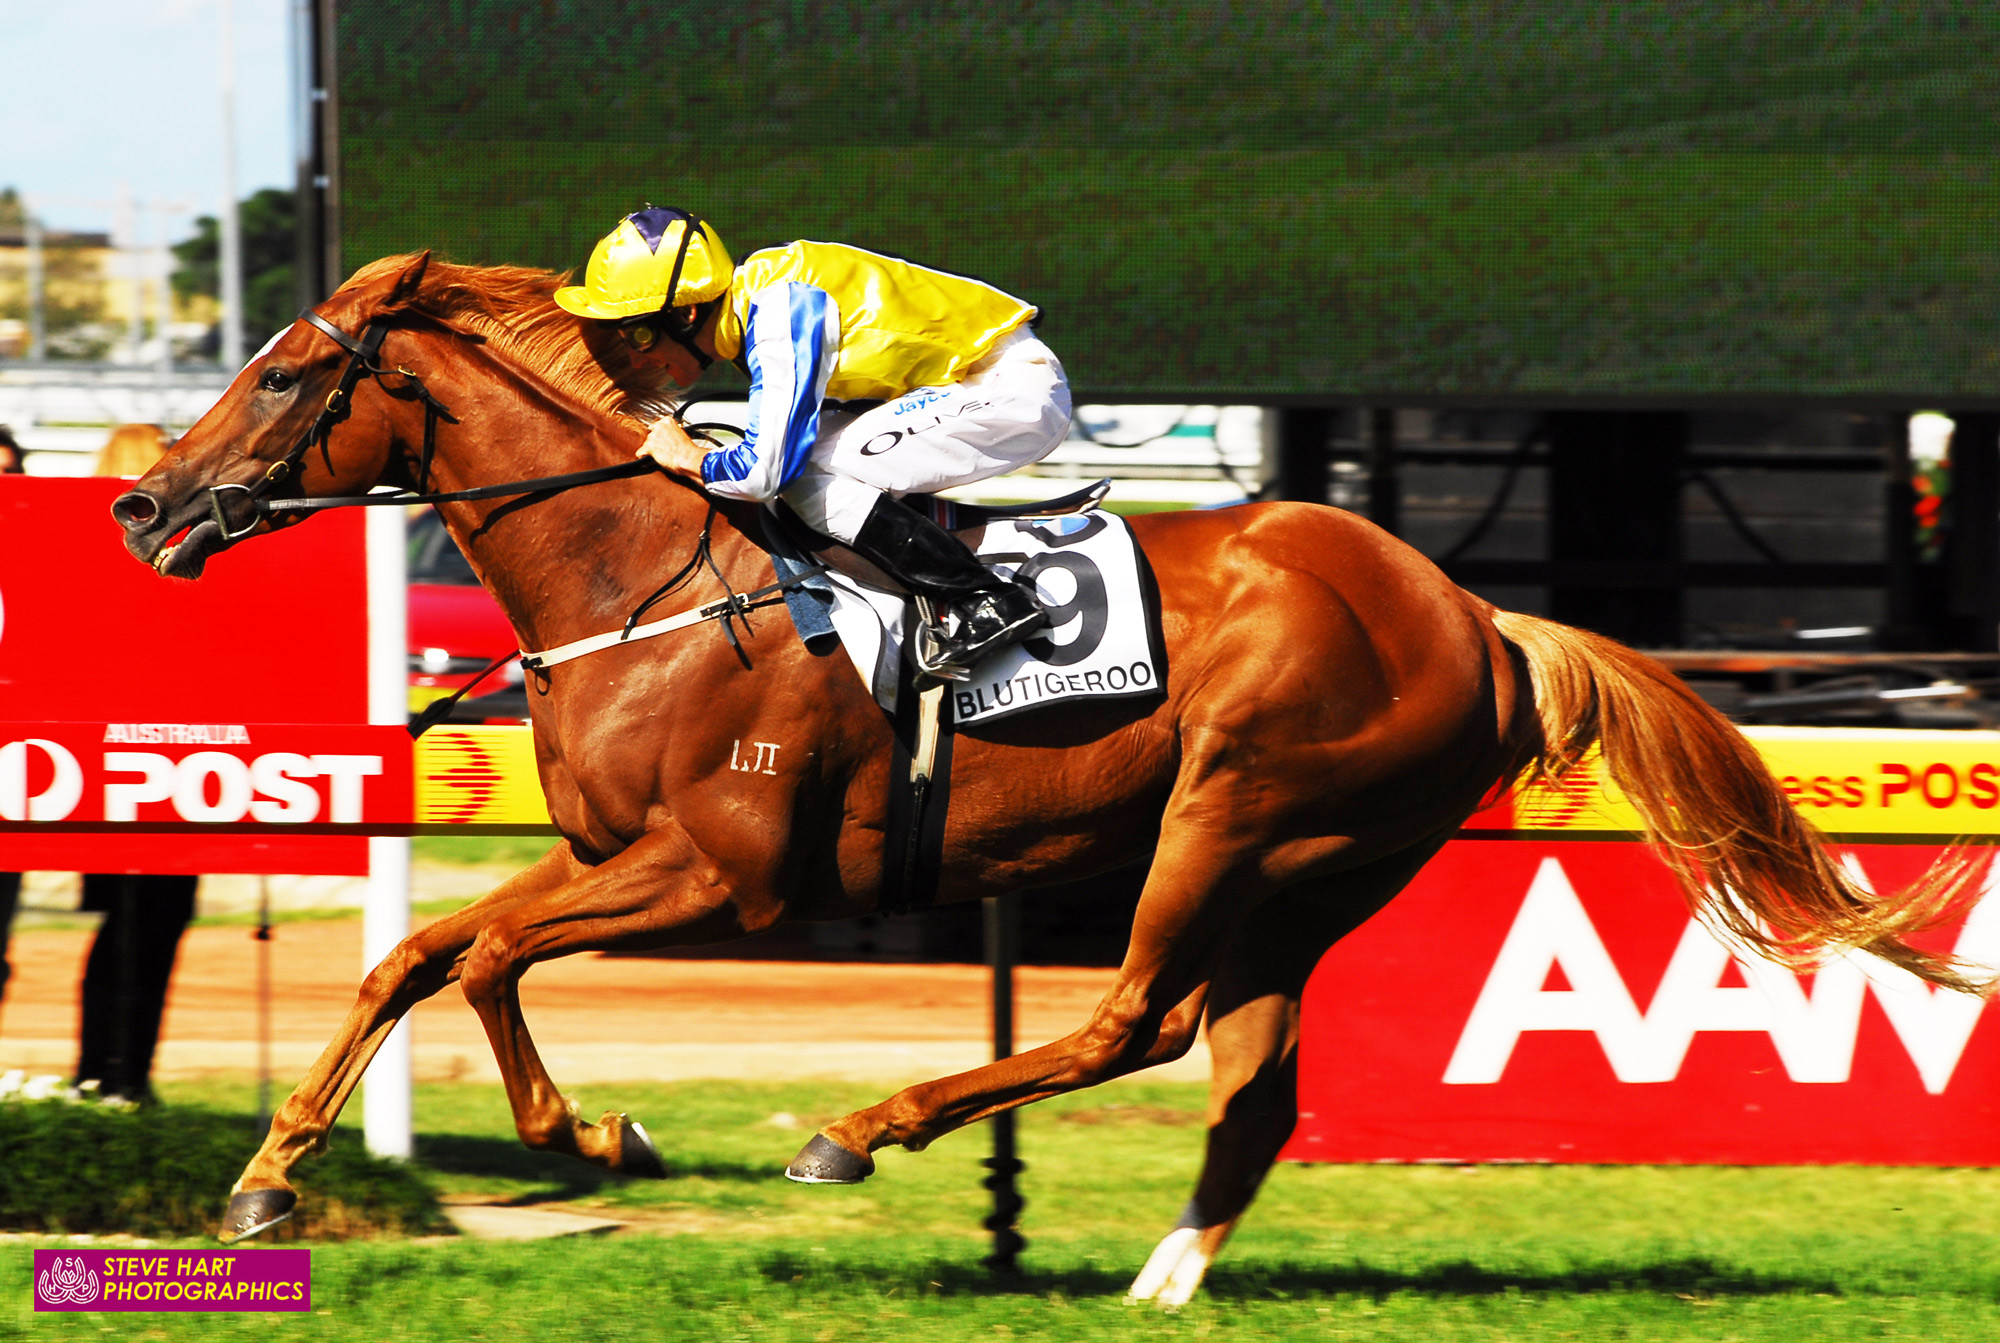 Image courtesy Steve Hart Photographics - Col Little and Damien Oliver team up again to win The BMW with Blutigeroo.